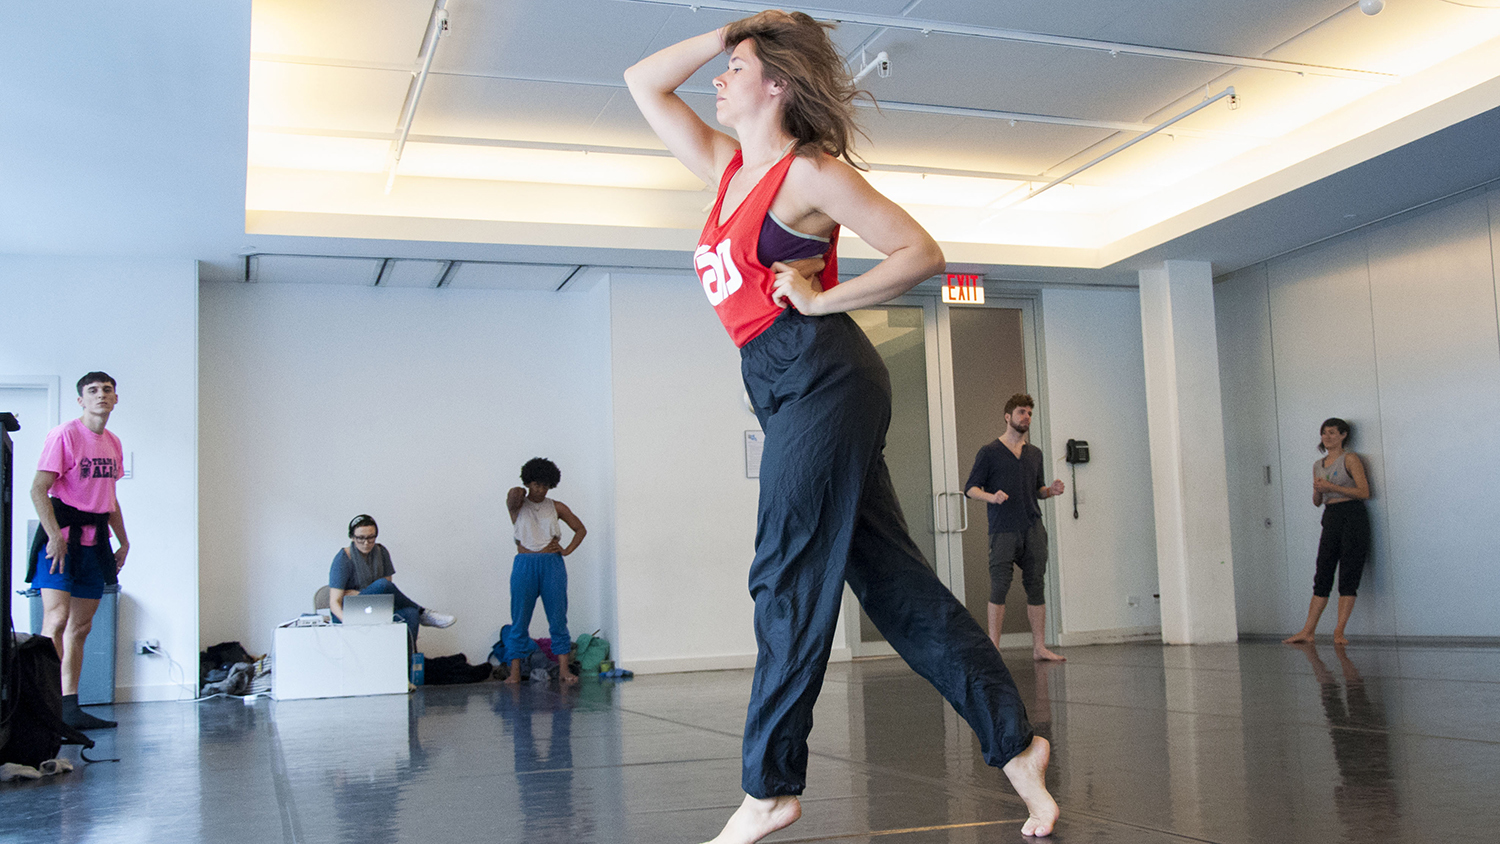 Check out shots of Dance Cartel at NYLA